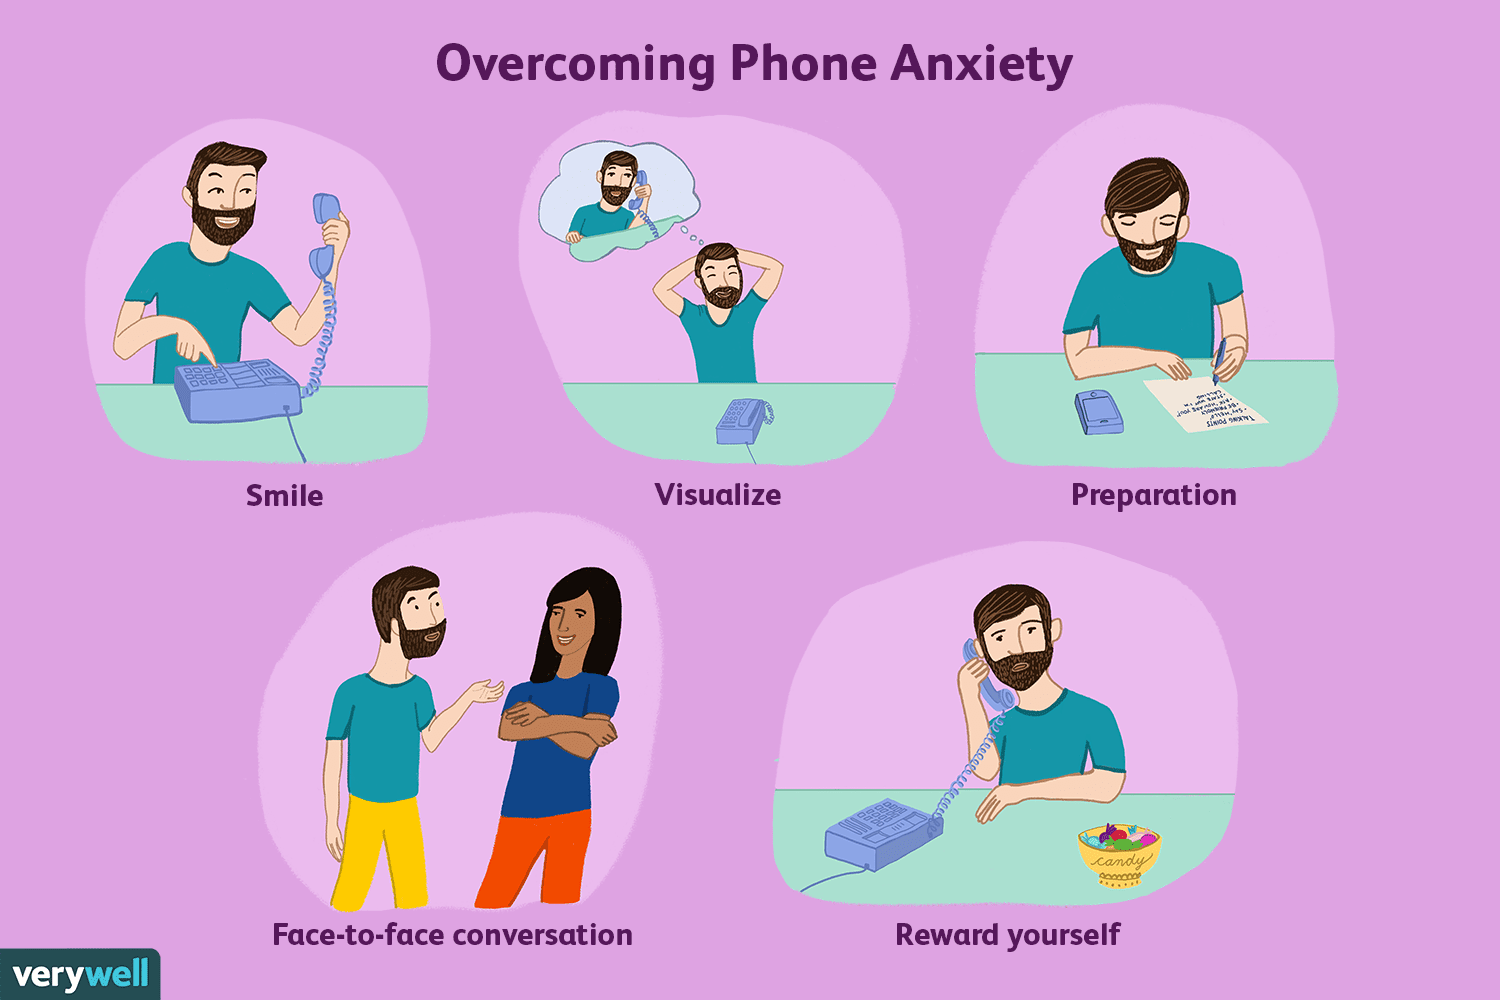 Strategies to overcome phone anxiety